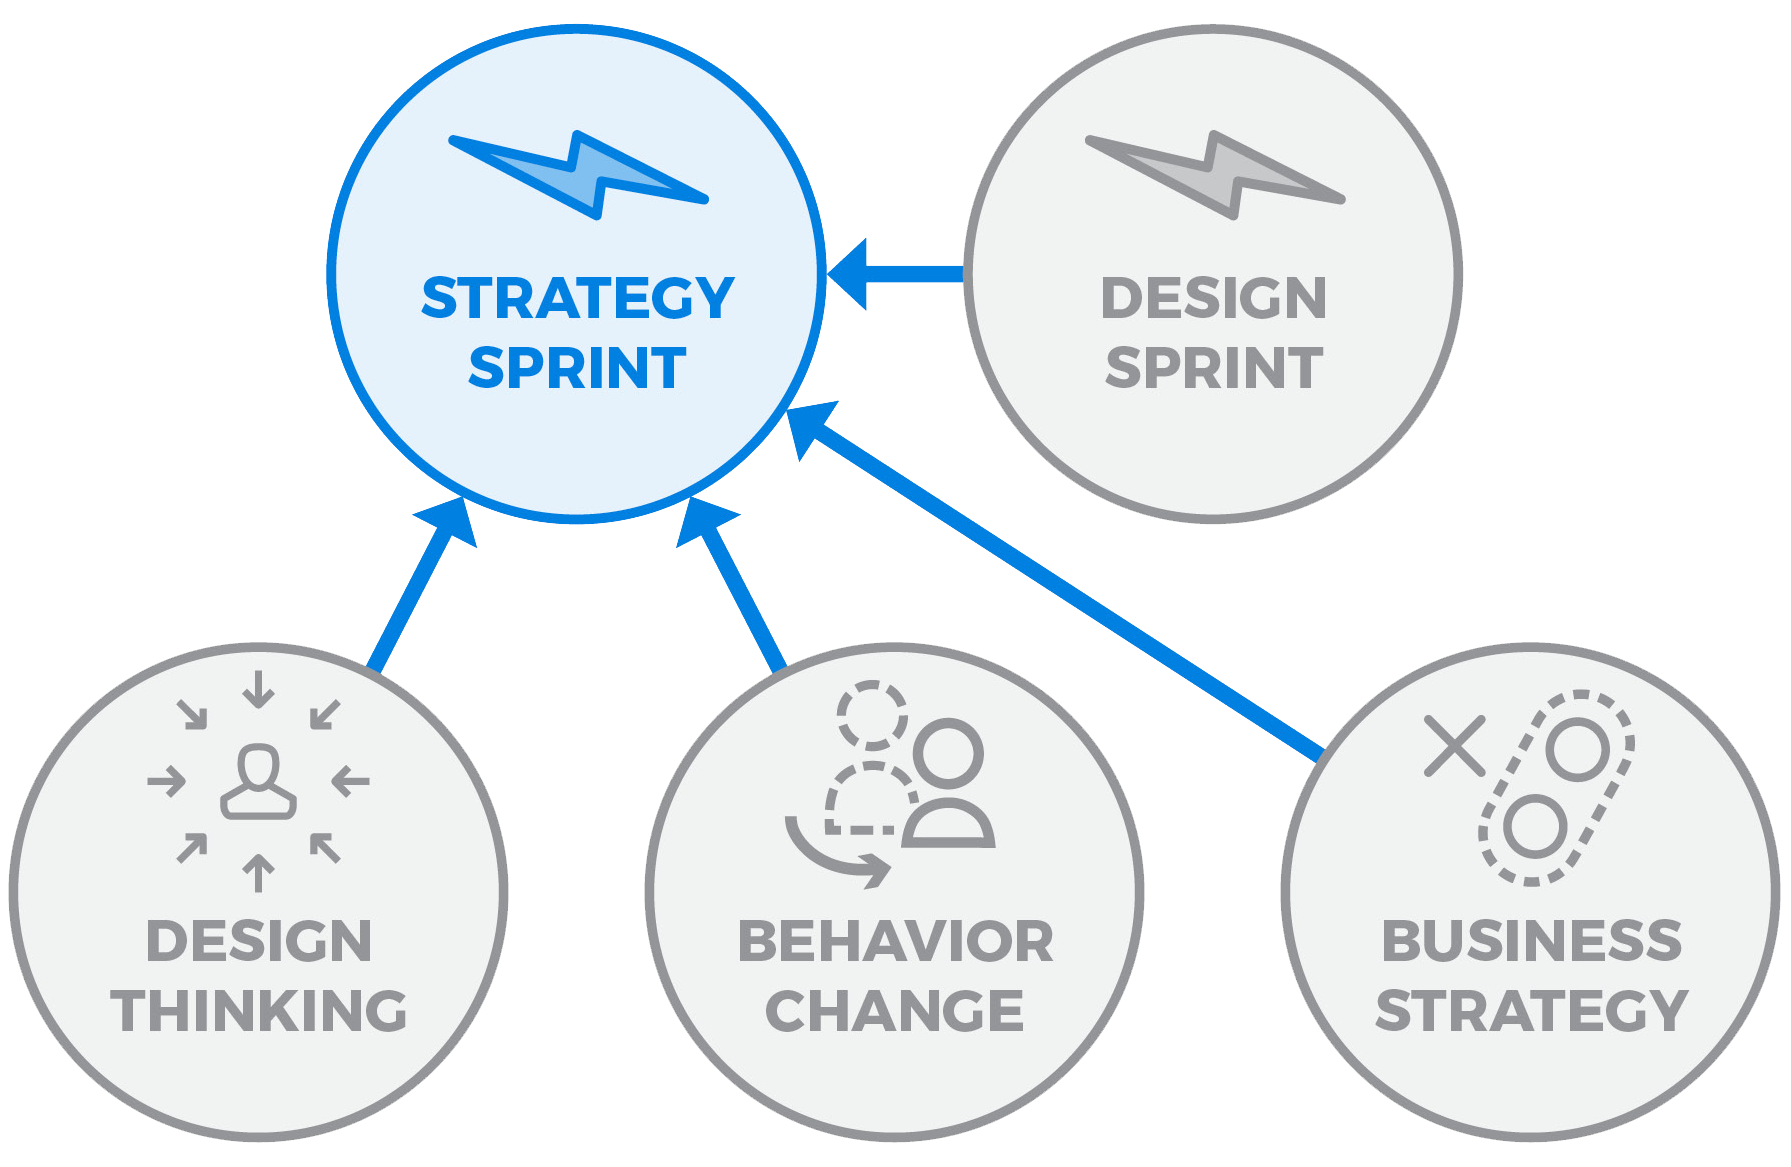 Strategy Sprint Graphic2.png